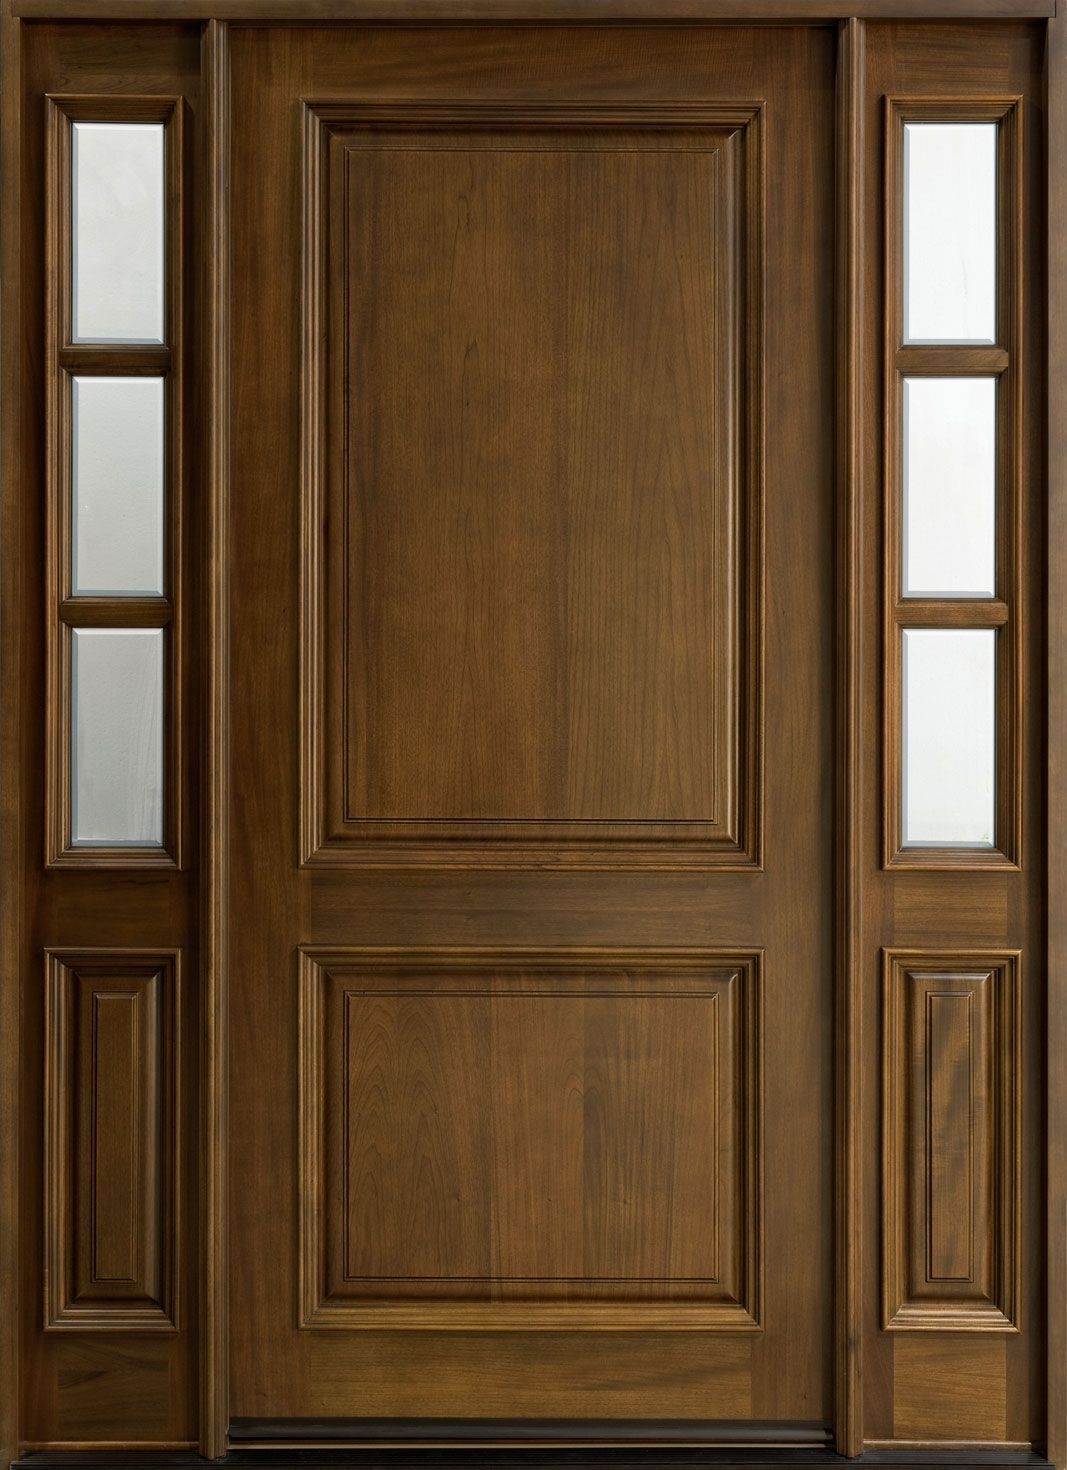 Solid Wood Doors Exterior Securitydoor Beamy Pinterest Wood